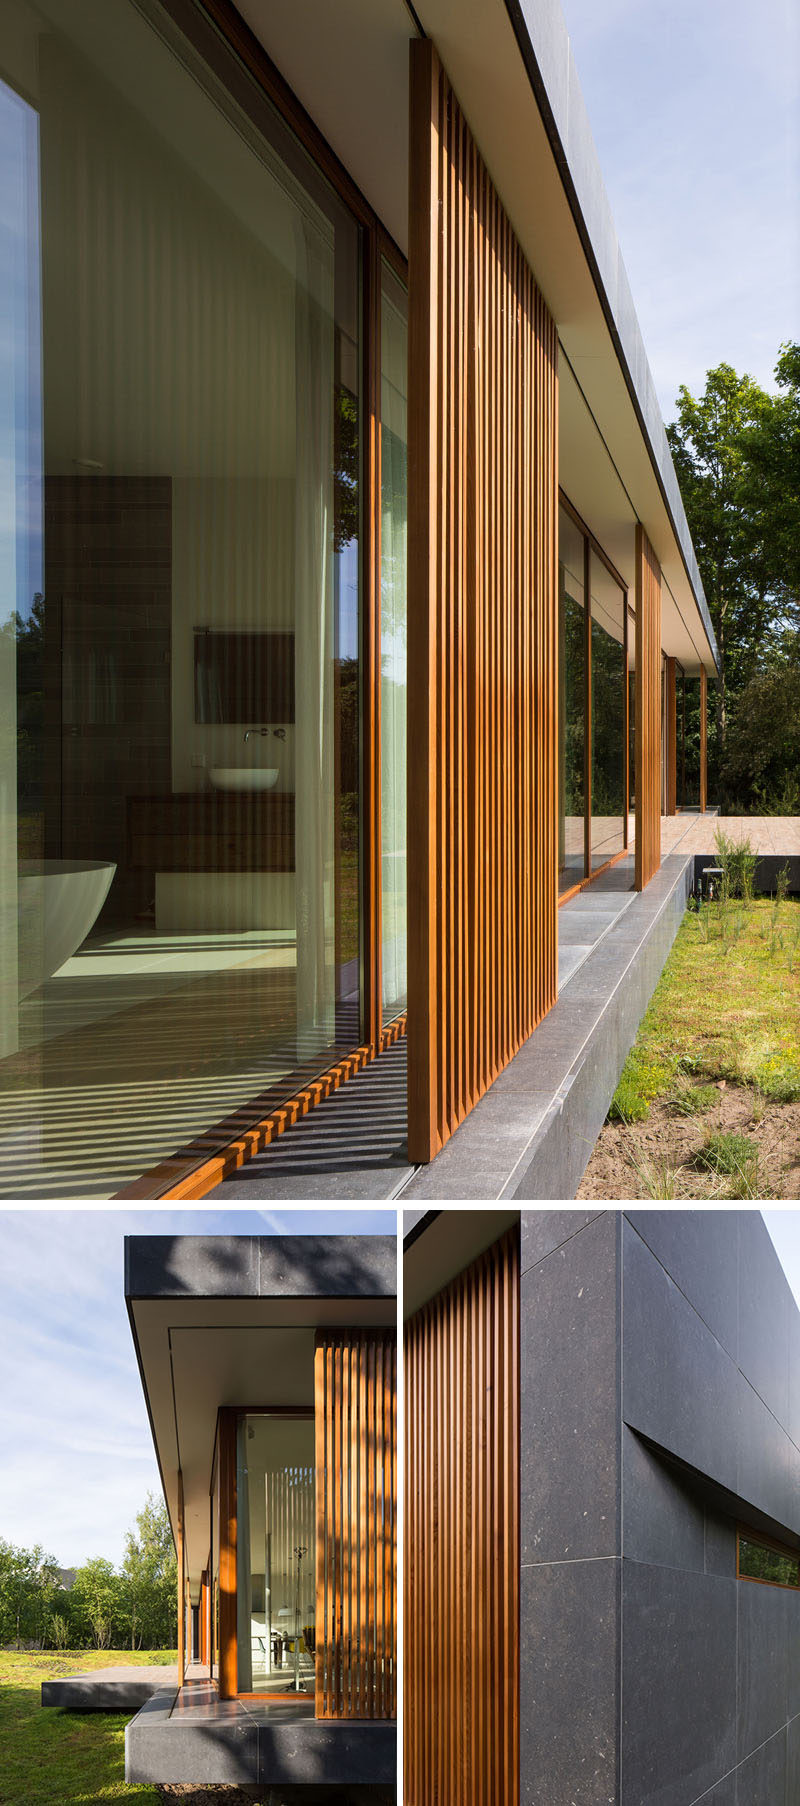 On the facade of this modern home, large scale, sliding wood mullions made from Western Red Cedar provide shade, privacy and protection to the home. The mullions can slide allowing the interior of the home to be opened up to the garden. #WoodScreens #Mullions #ModernHouse #ModernArchitecture